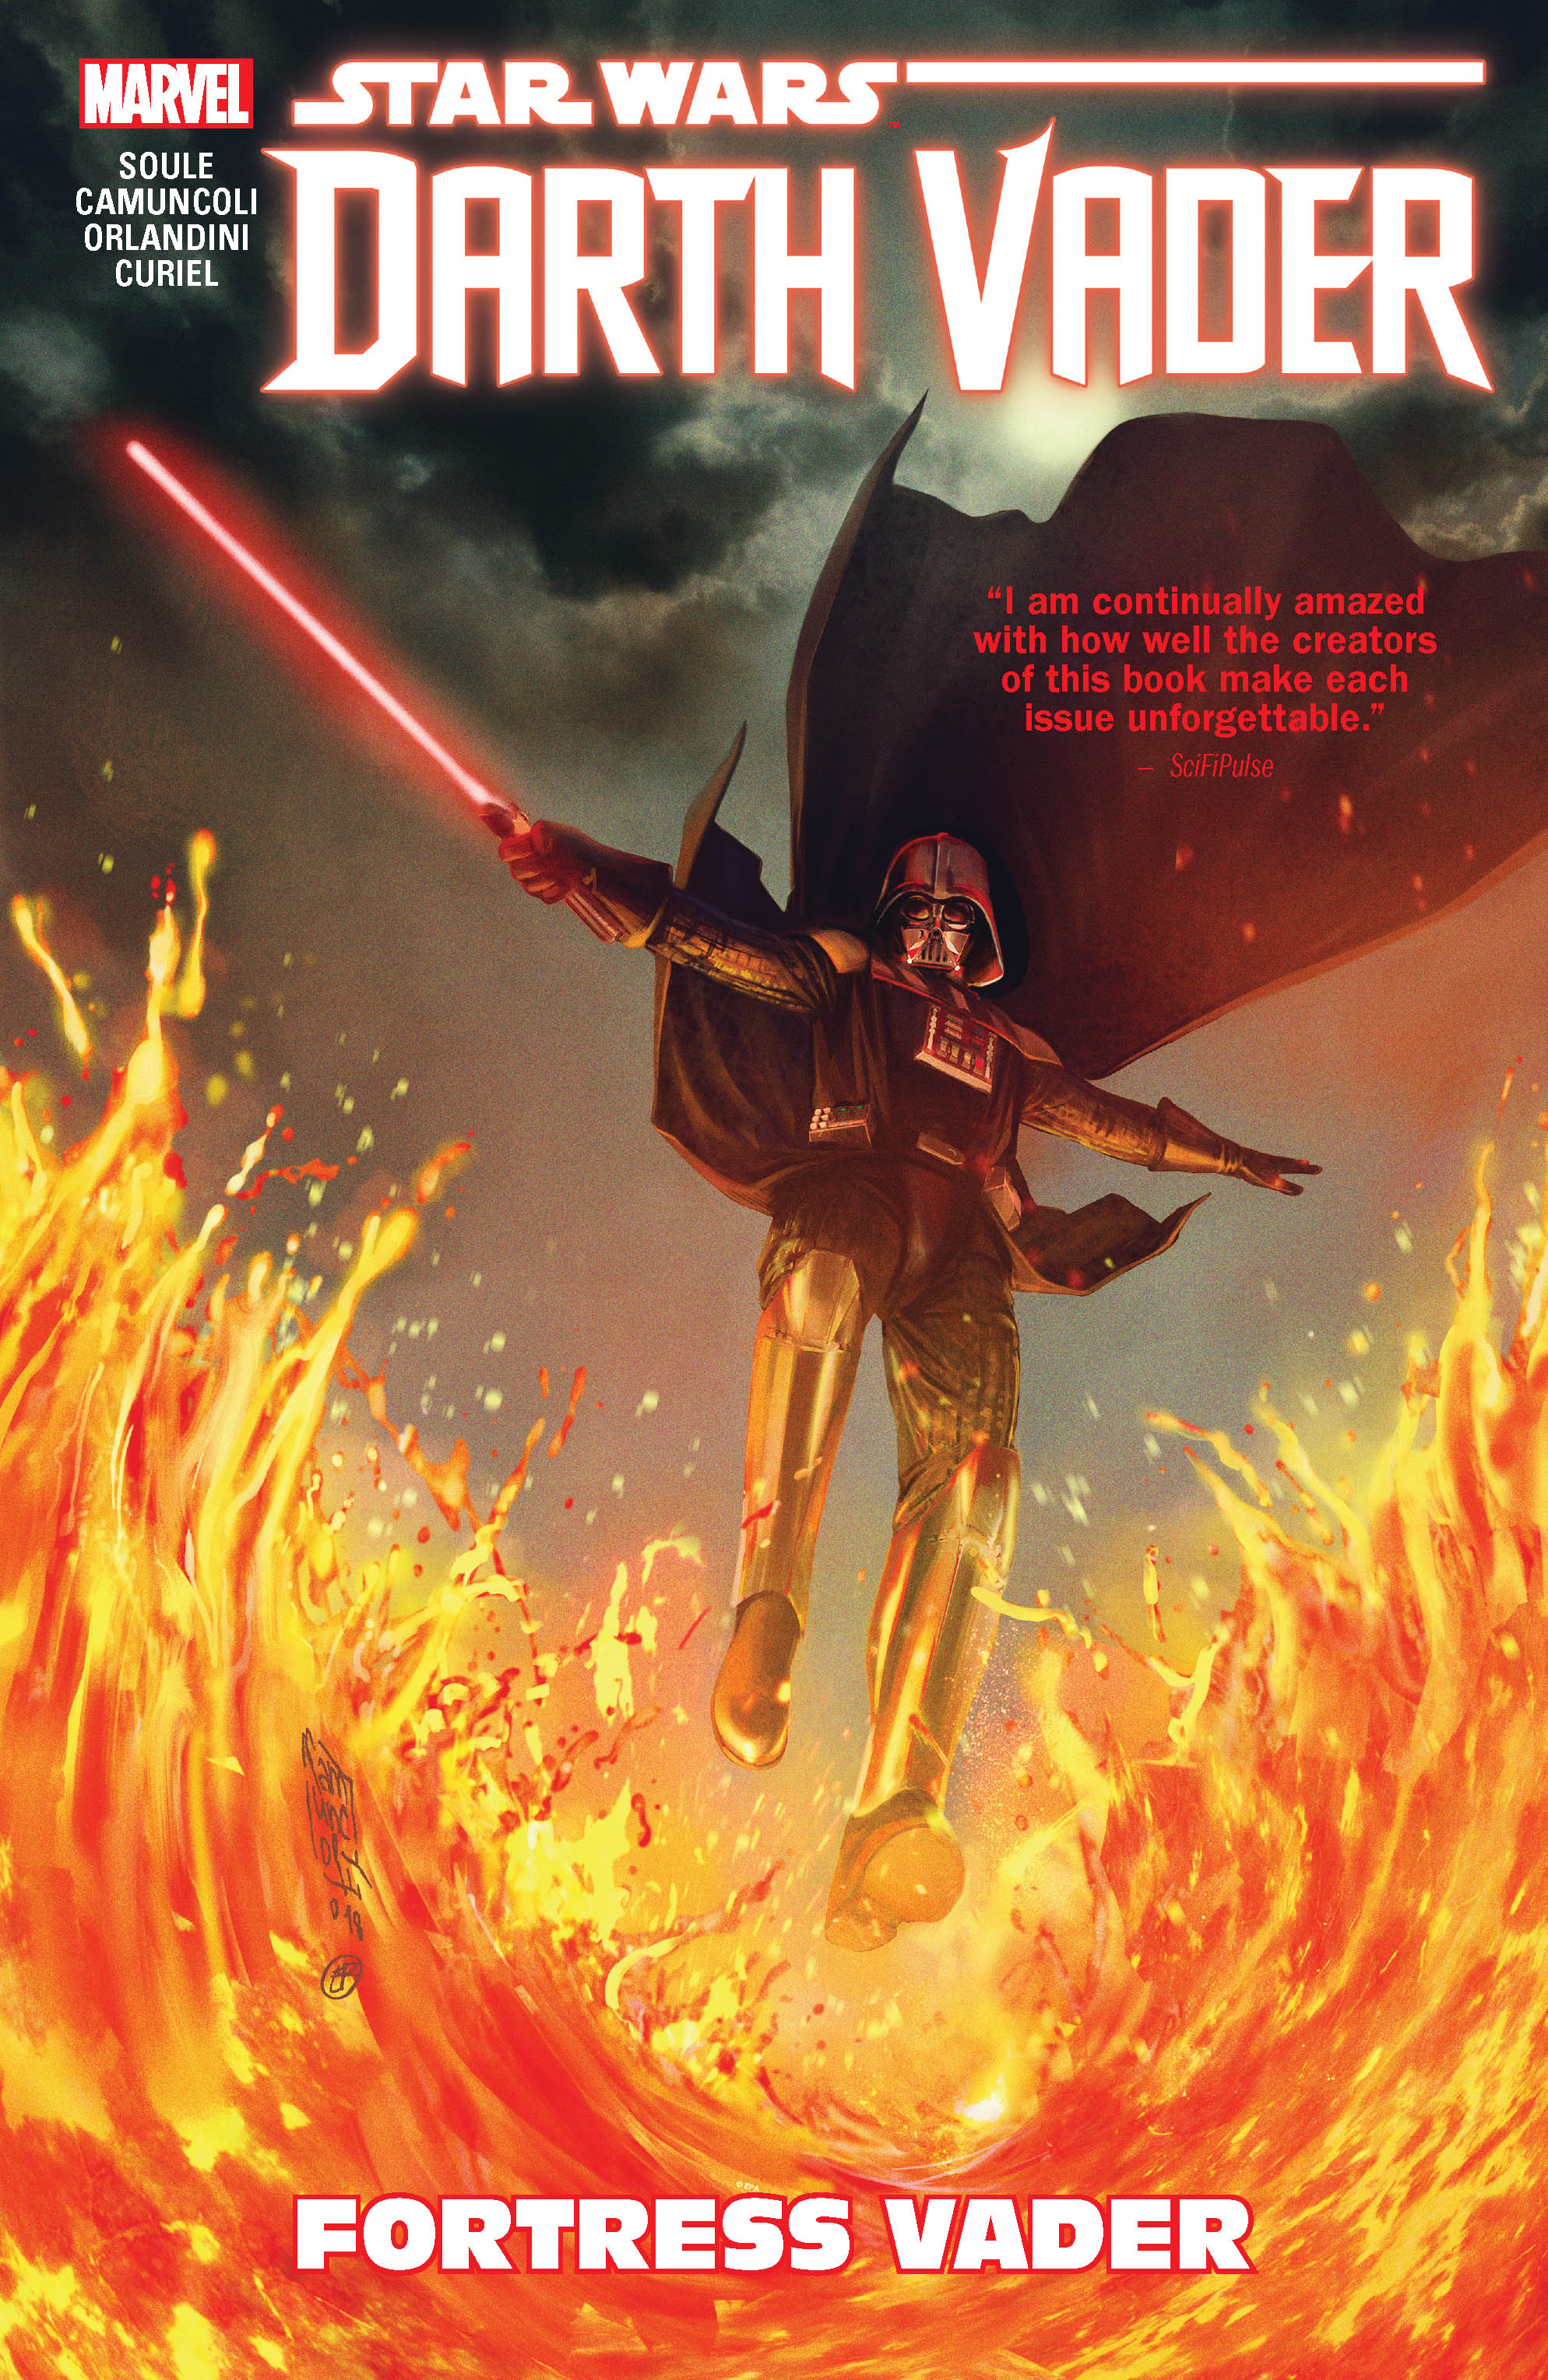 Star Wars: Darth Vader: Dark Lord Of the Sith Vol. 4 - Fortress Vader (Trade Paperback)